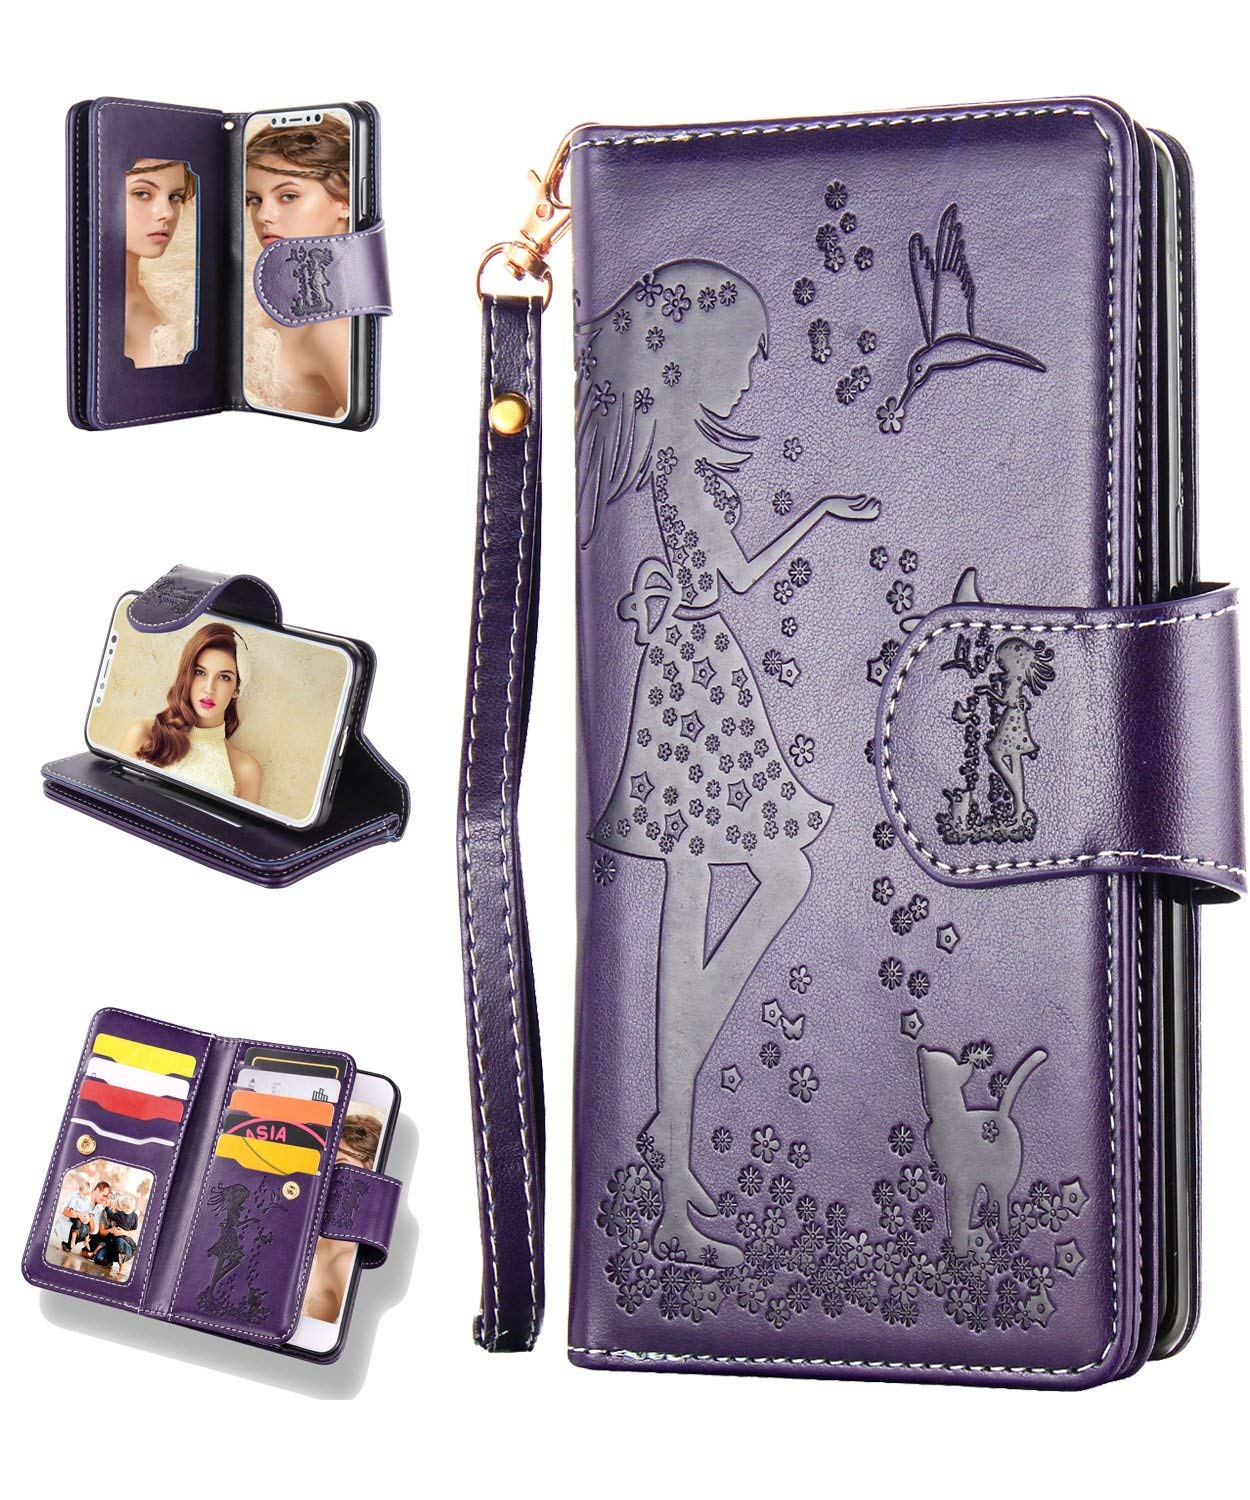 FLYEE iPhone 11 Pro Max Wallet Case with Mirror, 9 Cards Slots Premium Leather Flip Case Closure Magnetic Dream [Embossed] Protective Folding Cover Kickstand for iPhone 11 Pro Max 6.5 inch-Purple